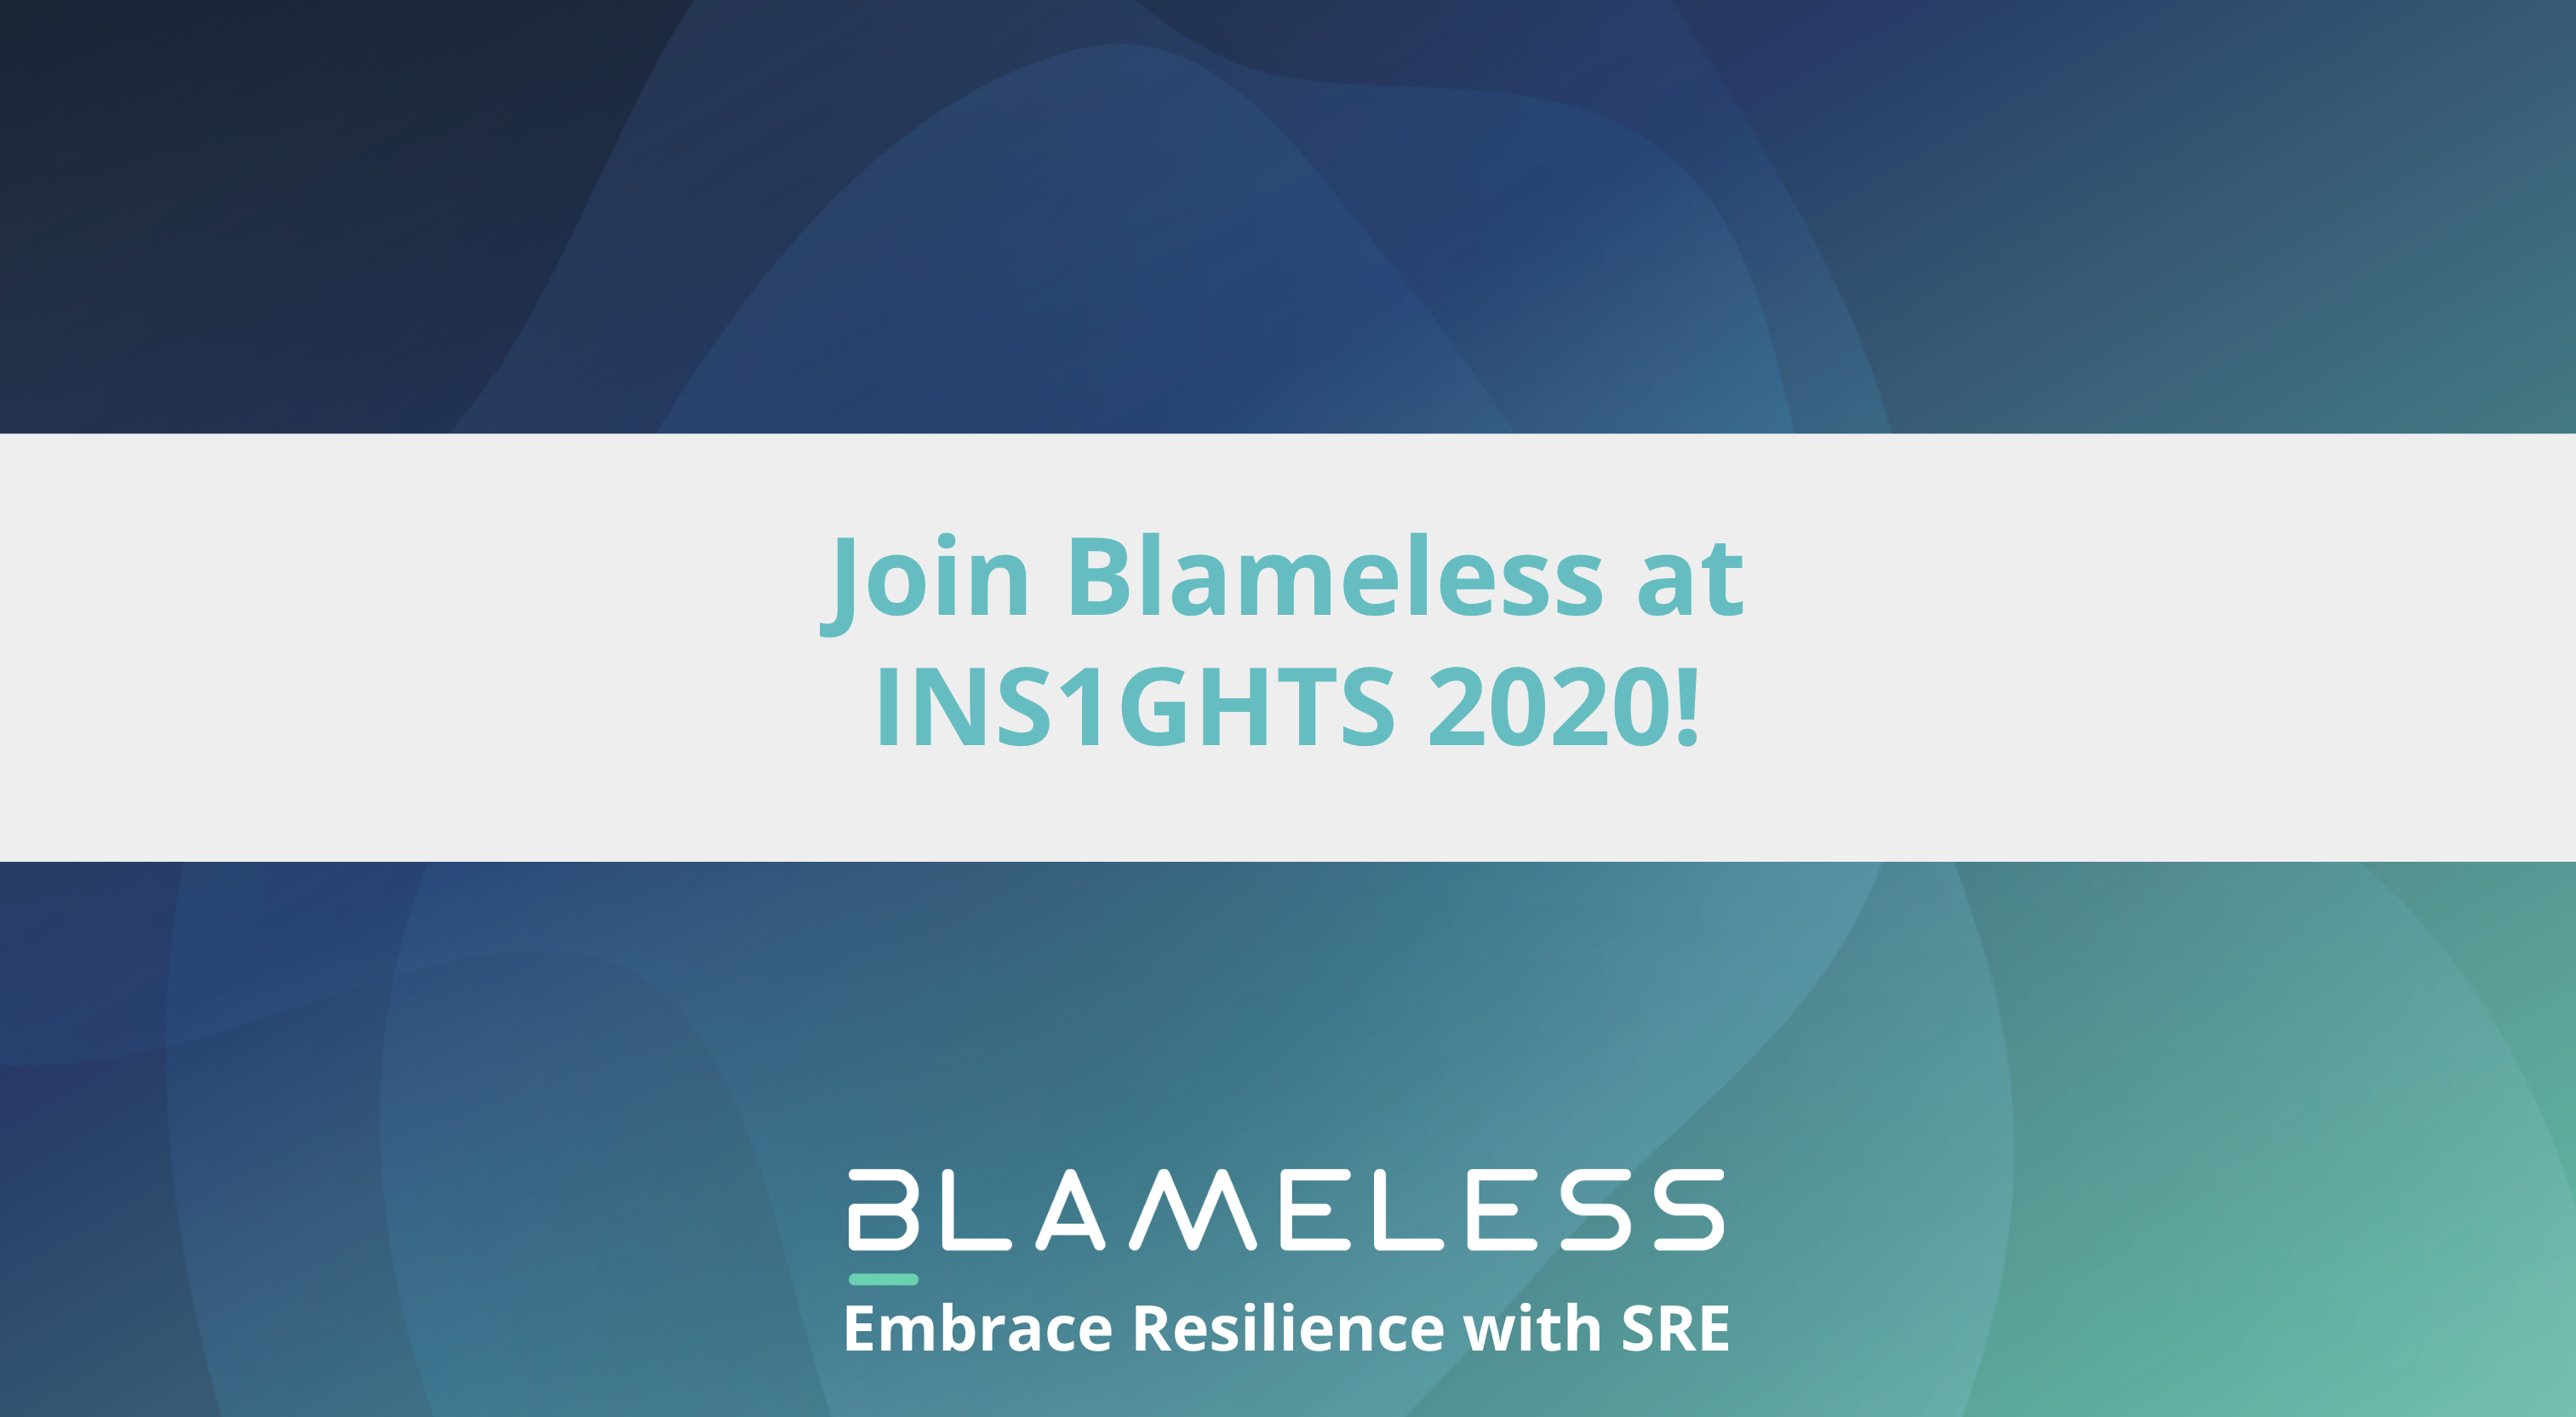 Join Blameless at INS1GHTS2020!